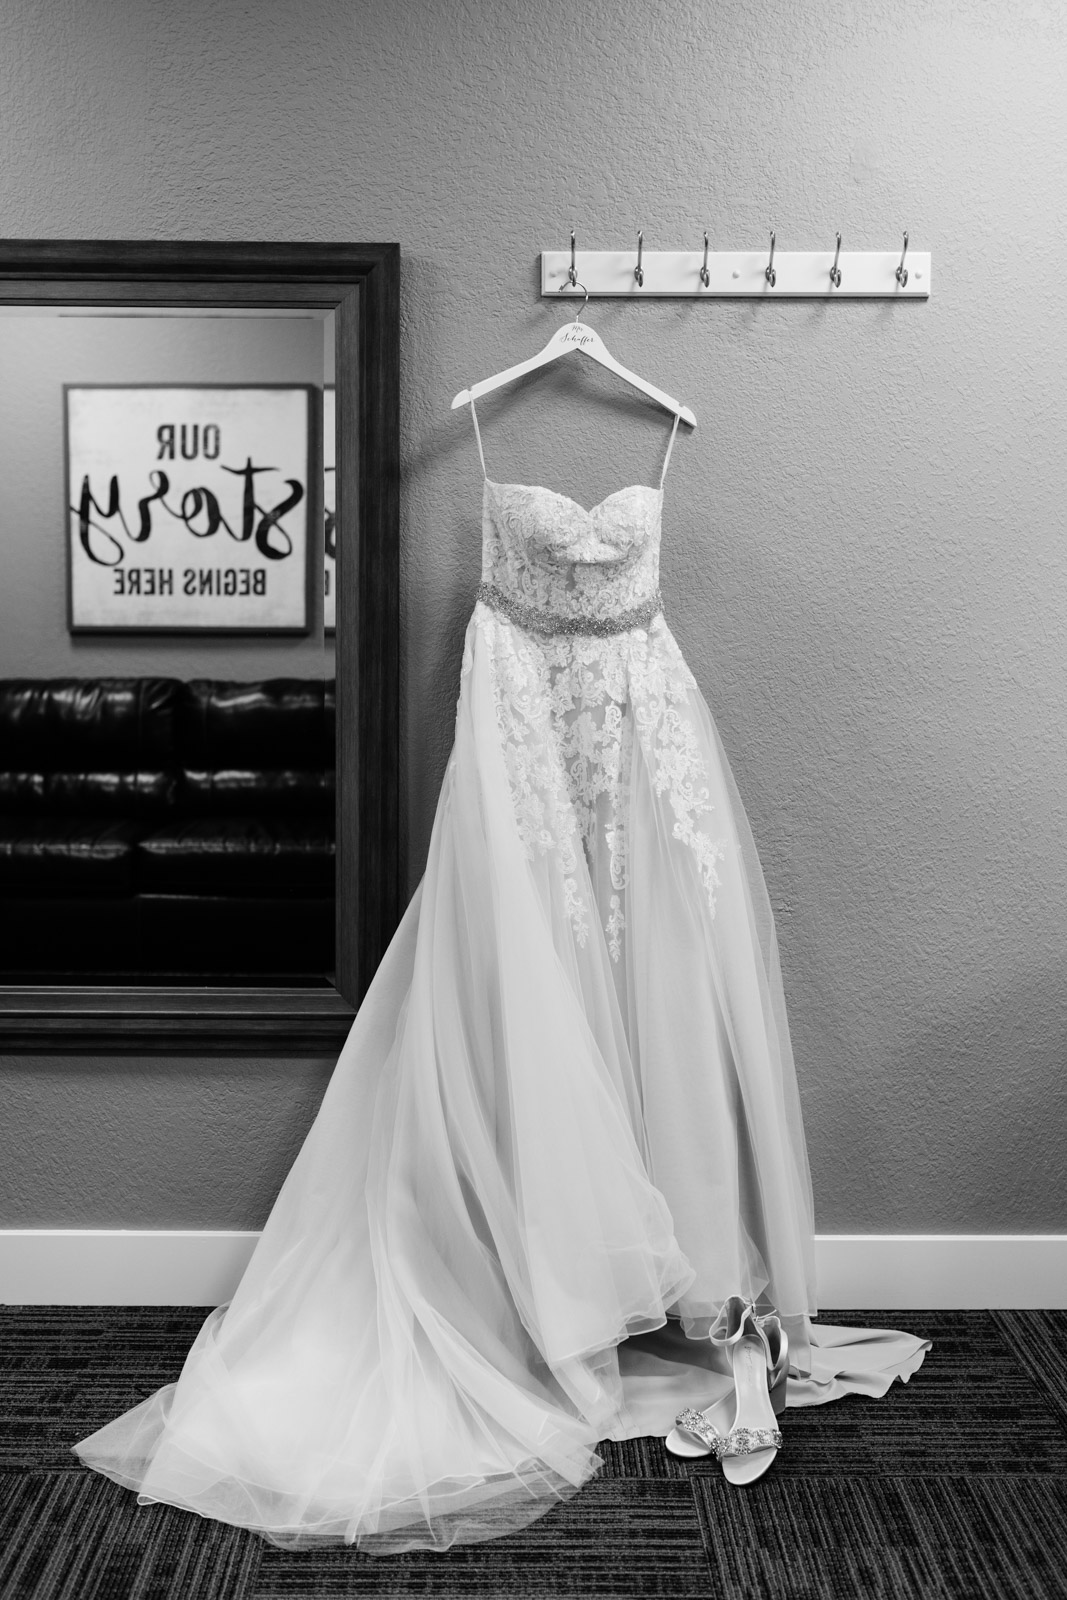 wedding dress hanging on wall epic event center wedding venue